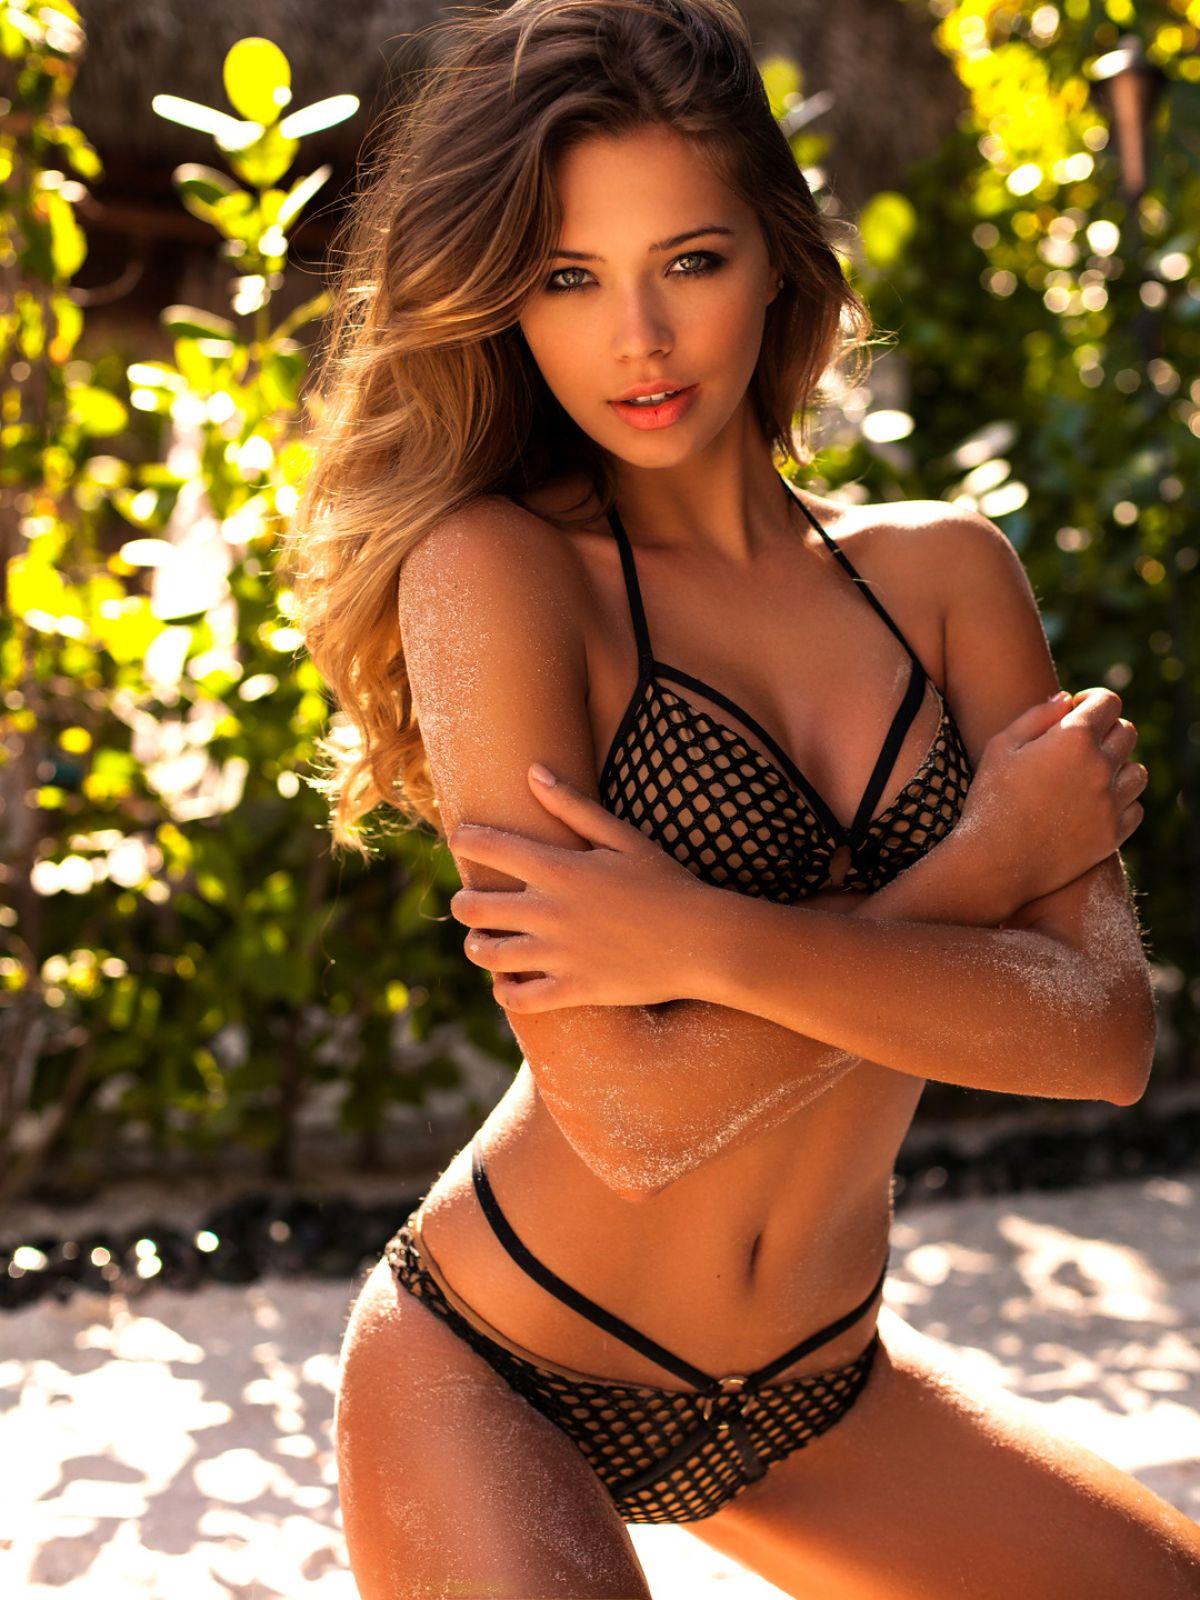 SANDRA KUBICKA - Holly Parker Photoshoot